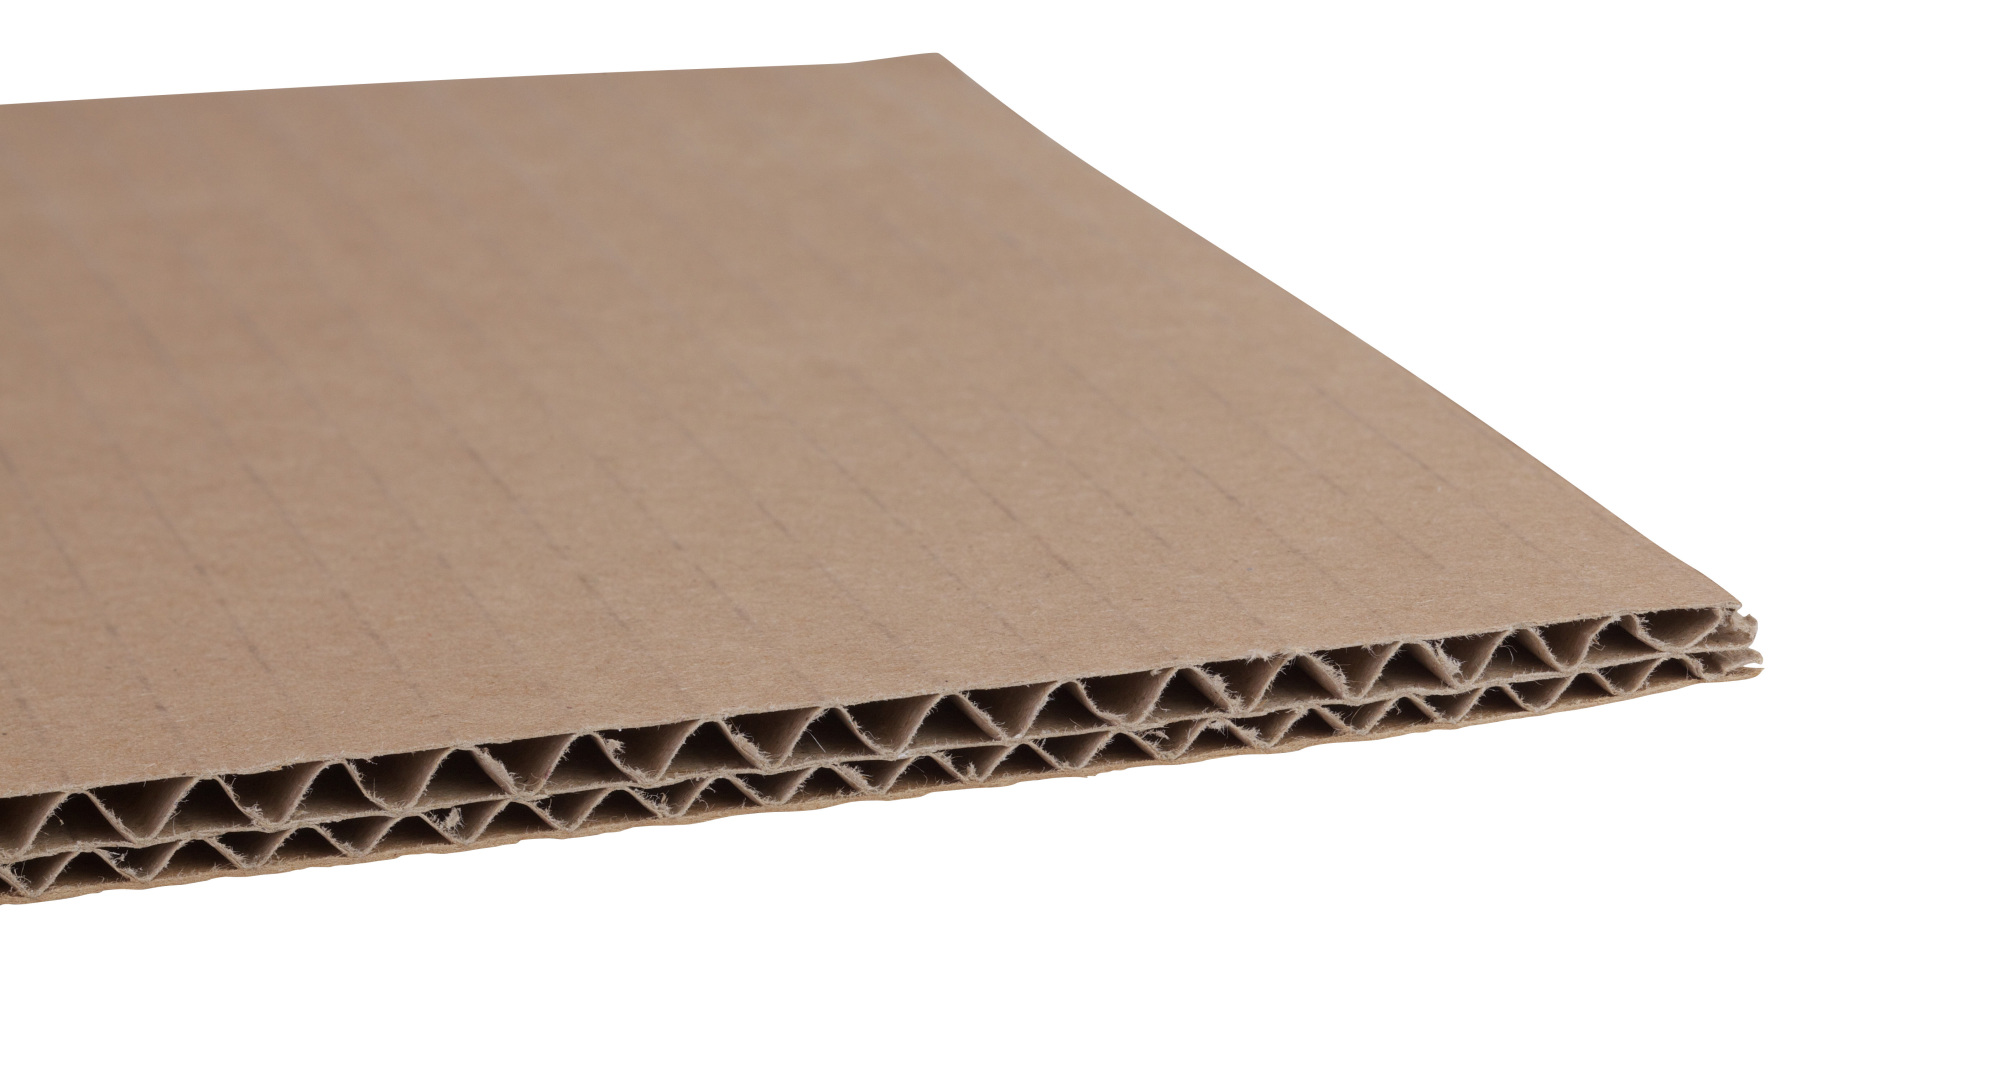 270 x 1770mm Double Wall Sheet (500 Pallet)